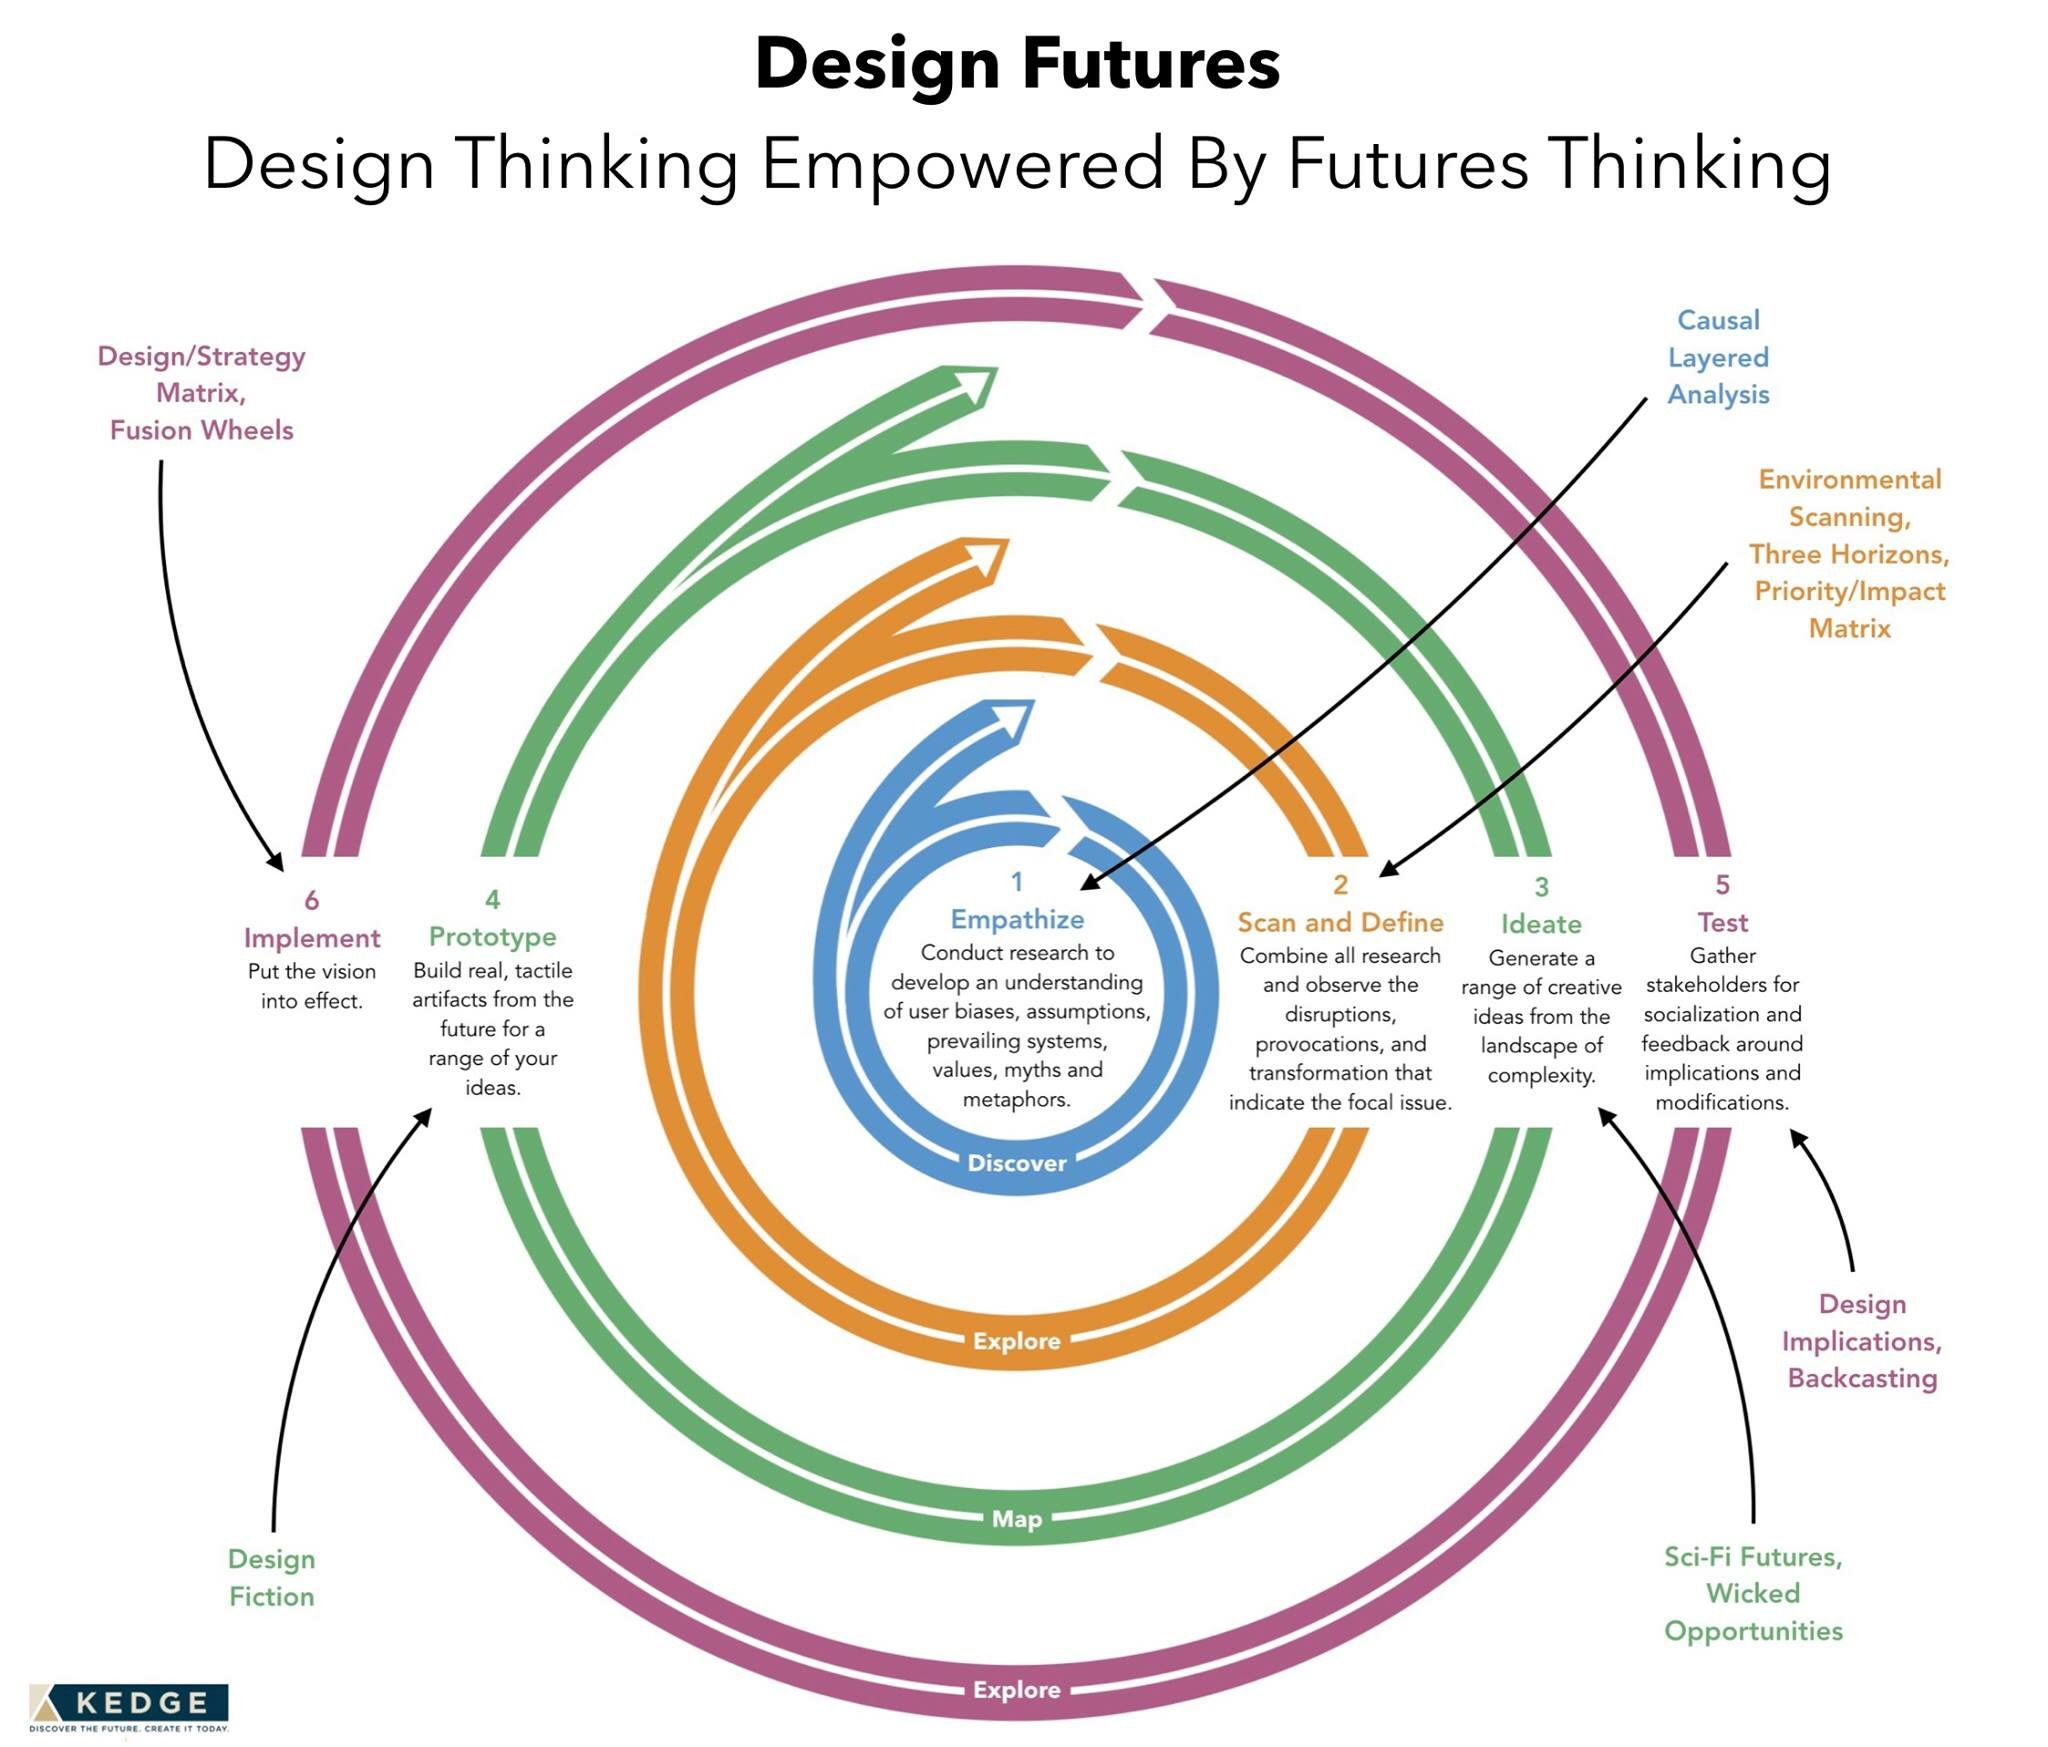 Design Thinking Empowered By Futures Thinking